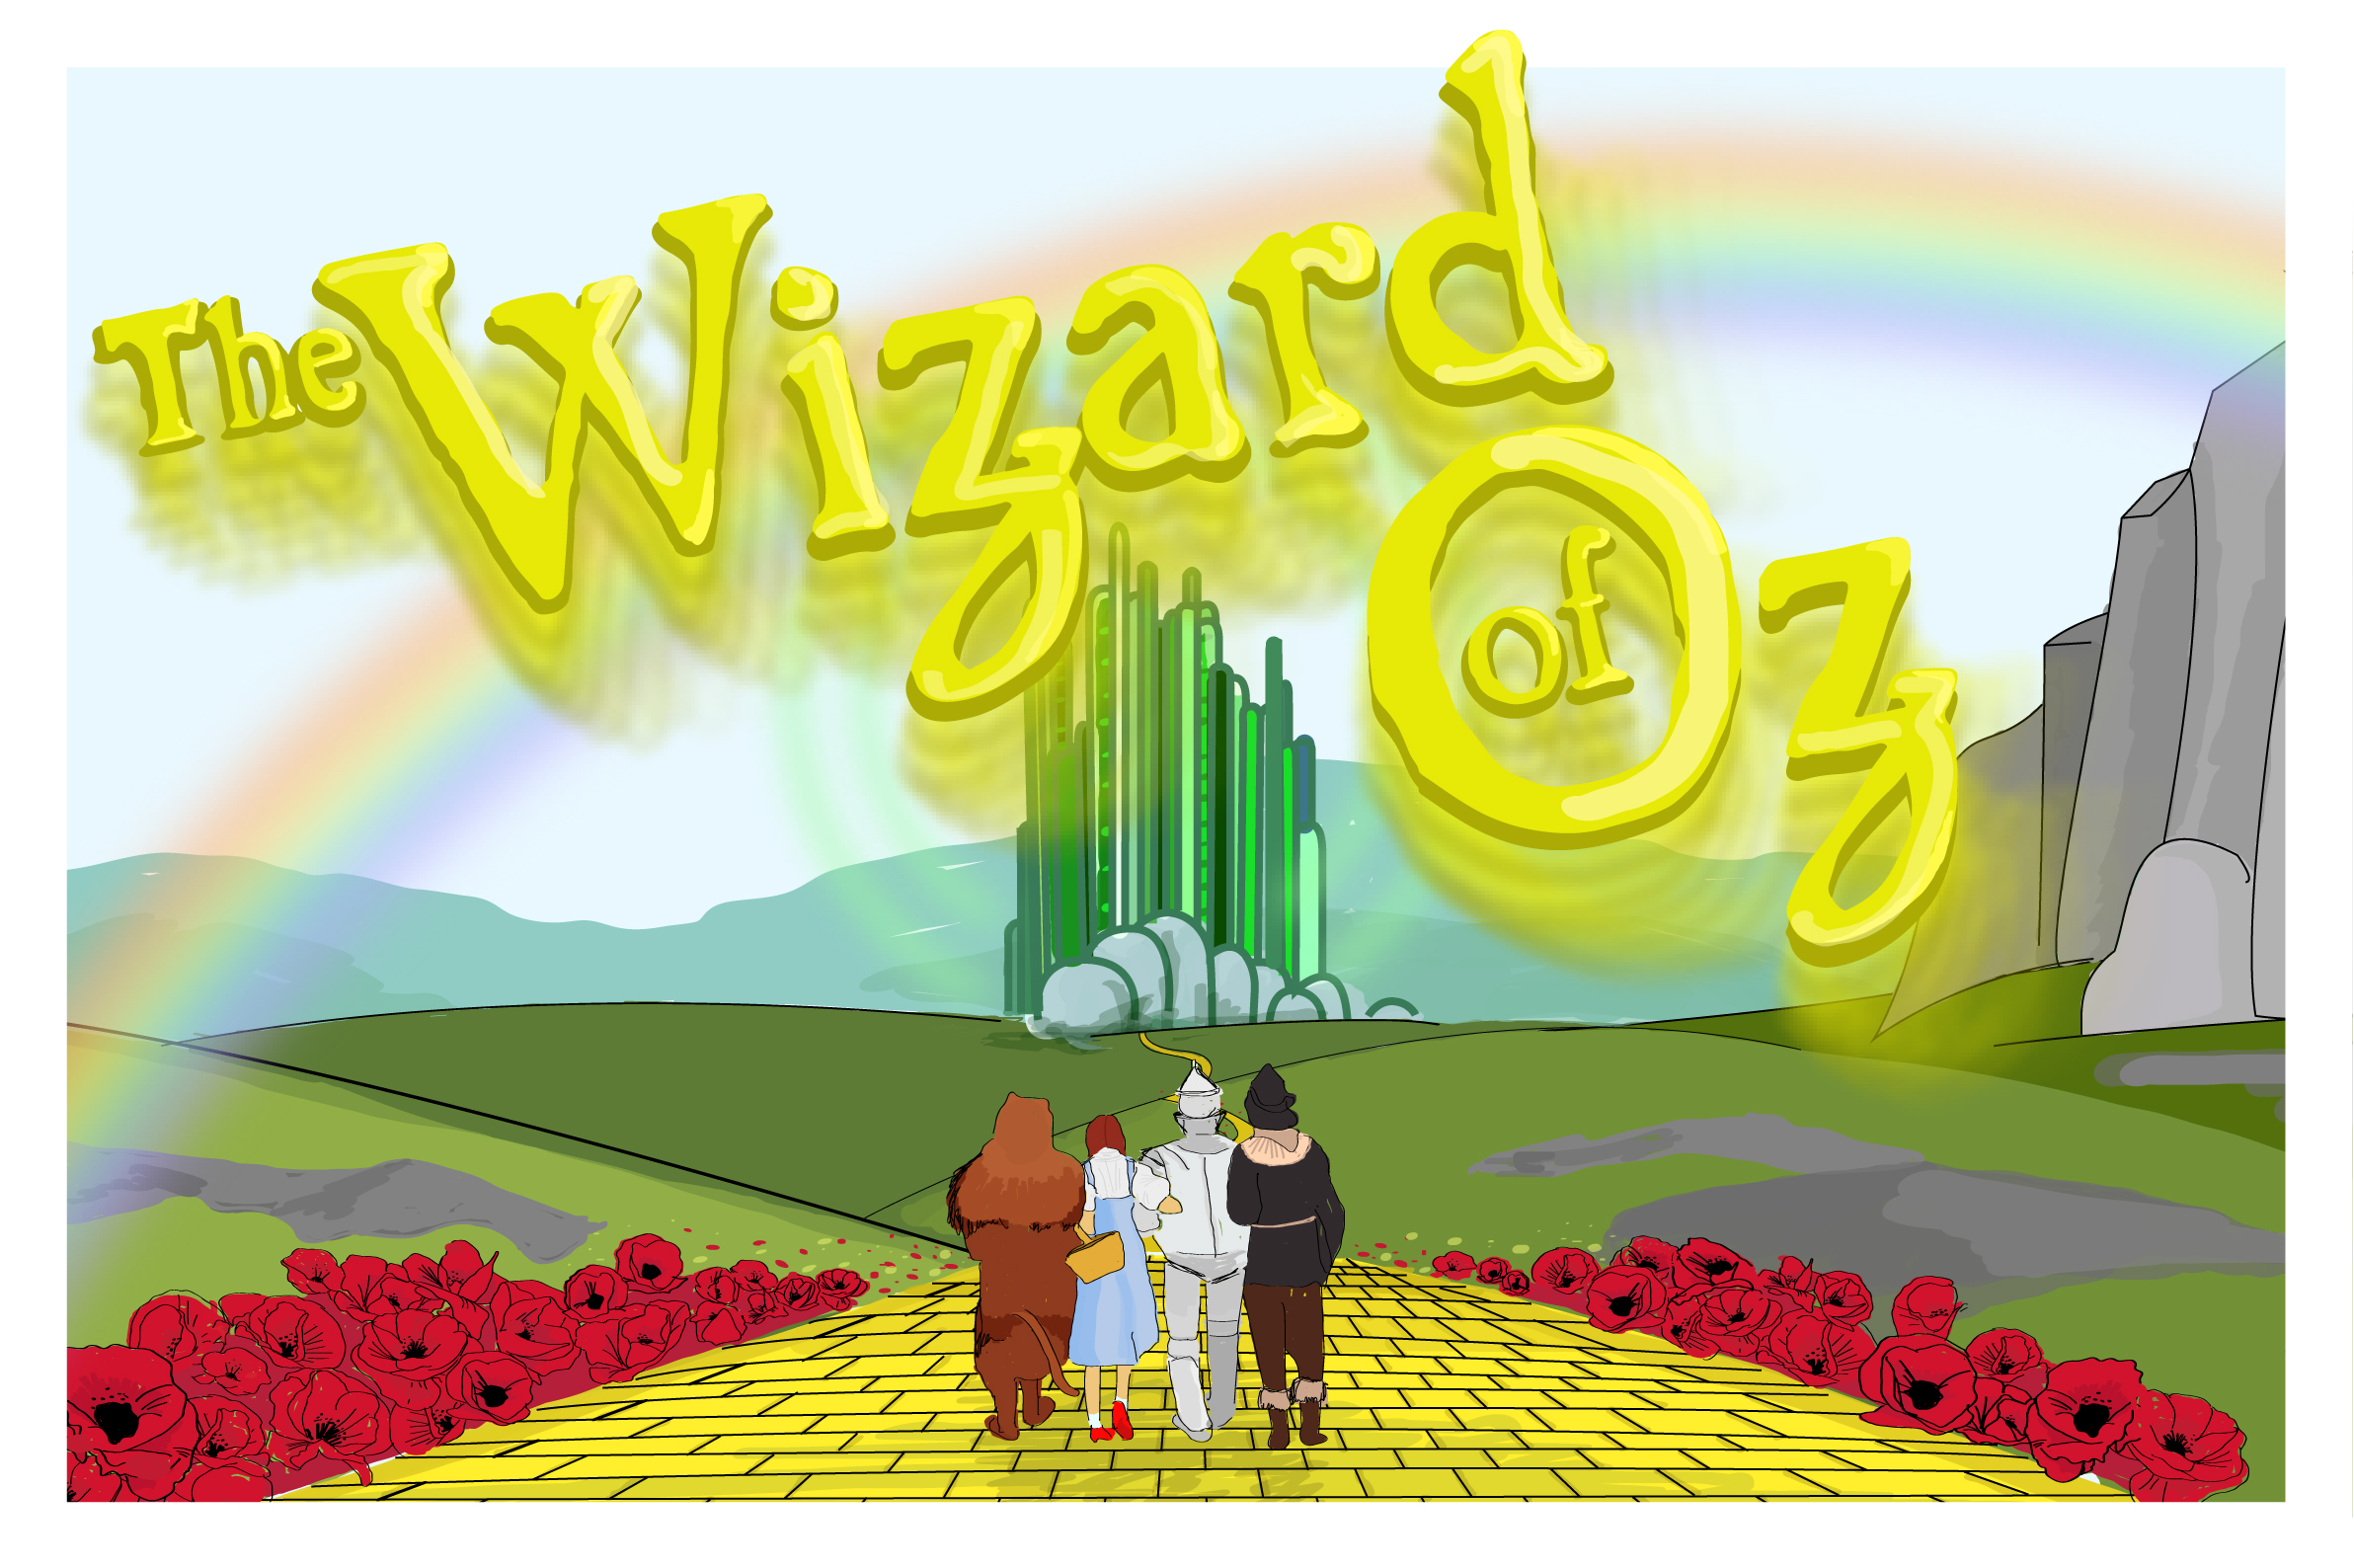 THE-WIZARD-OF-OZ_BLOG-PREVIEW